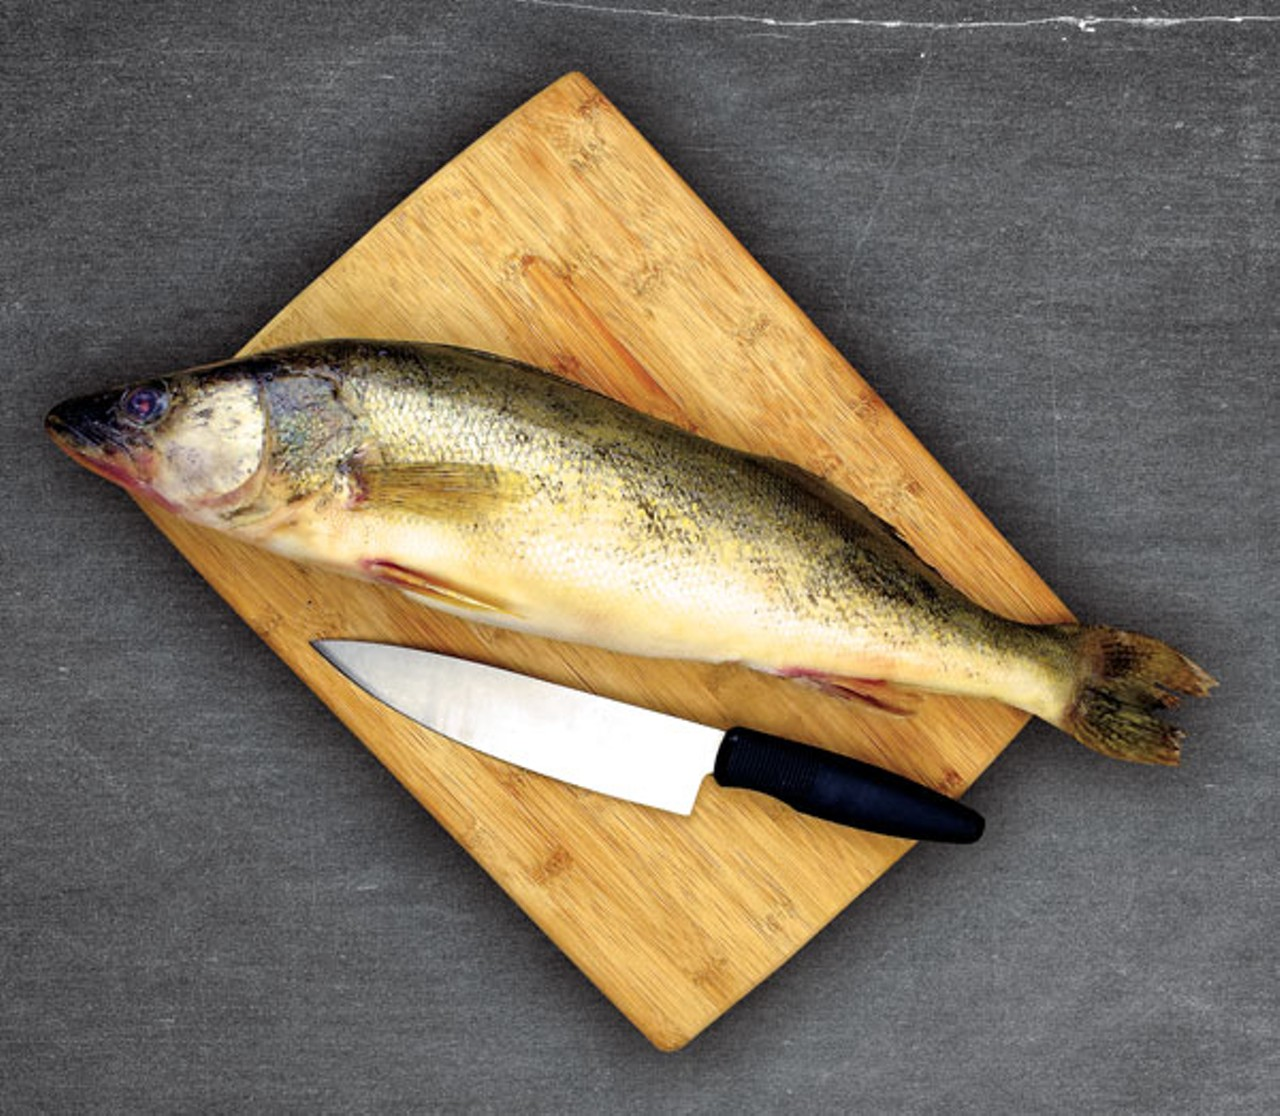 Emptiest Catch? The Quest for Local Fish and Lake-to-Table